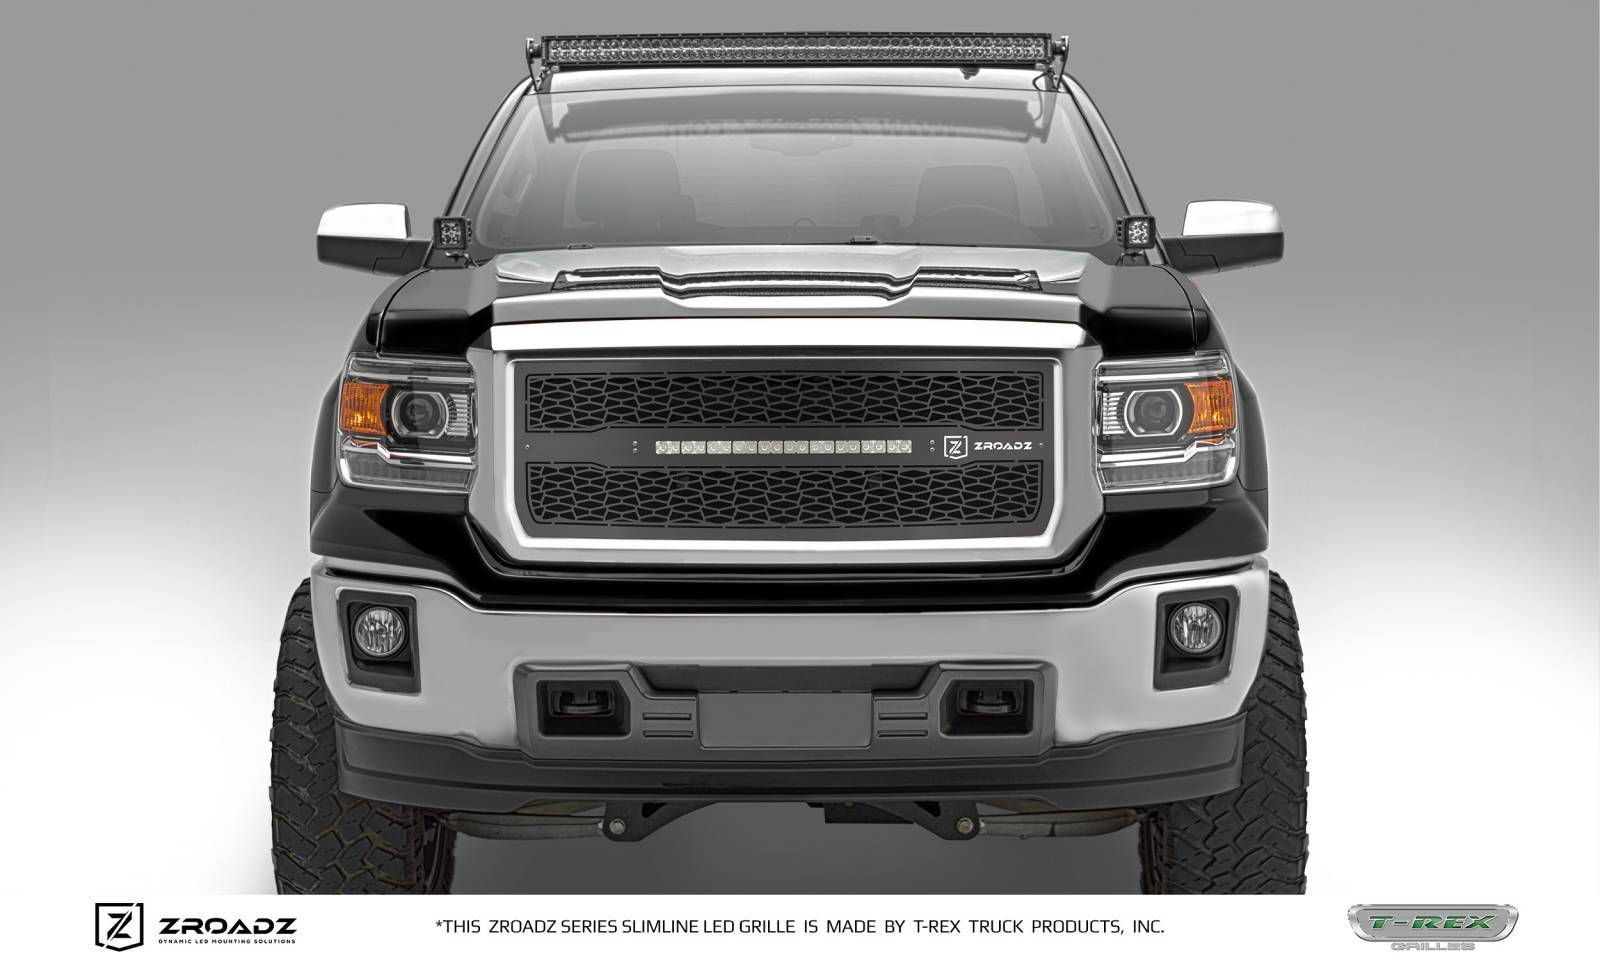 T-REX GMC Sierra 1500 - ZROADZ Series - Main Insert - Grille w/ One 20 Inch Slim Line Single Row LED Light Bar - Includes Universal Wiring Harness - Part# Z312081